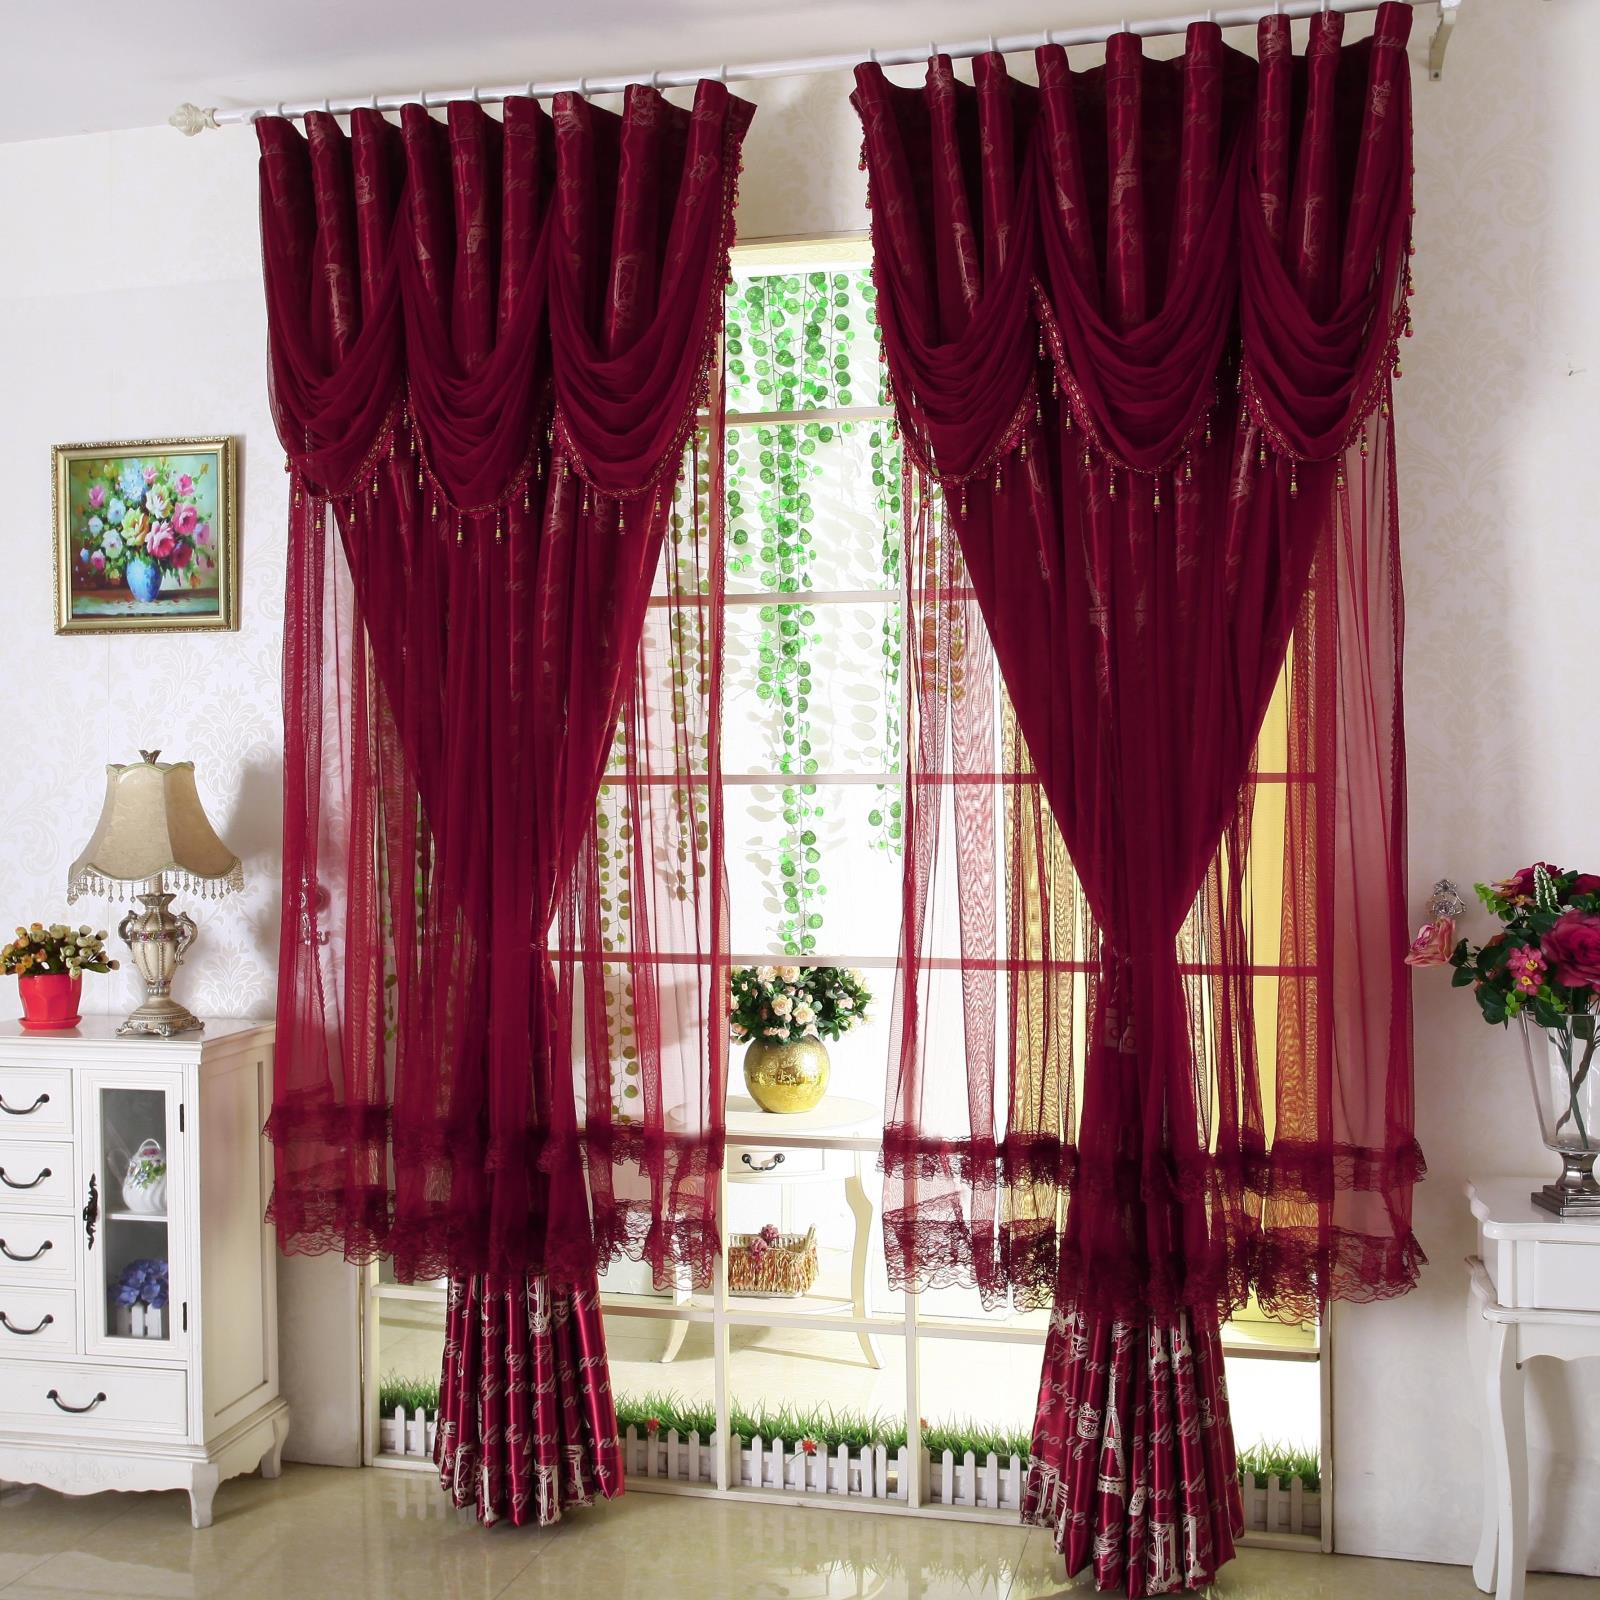 New Korean Lace Curtains Red Purple Blue Finished Curtains European Shade Curtains For Bedroom